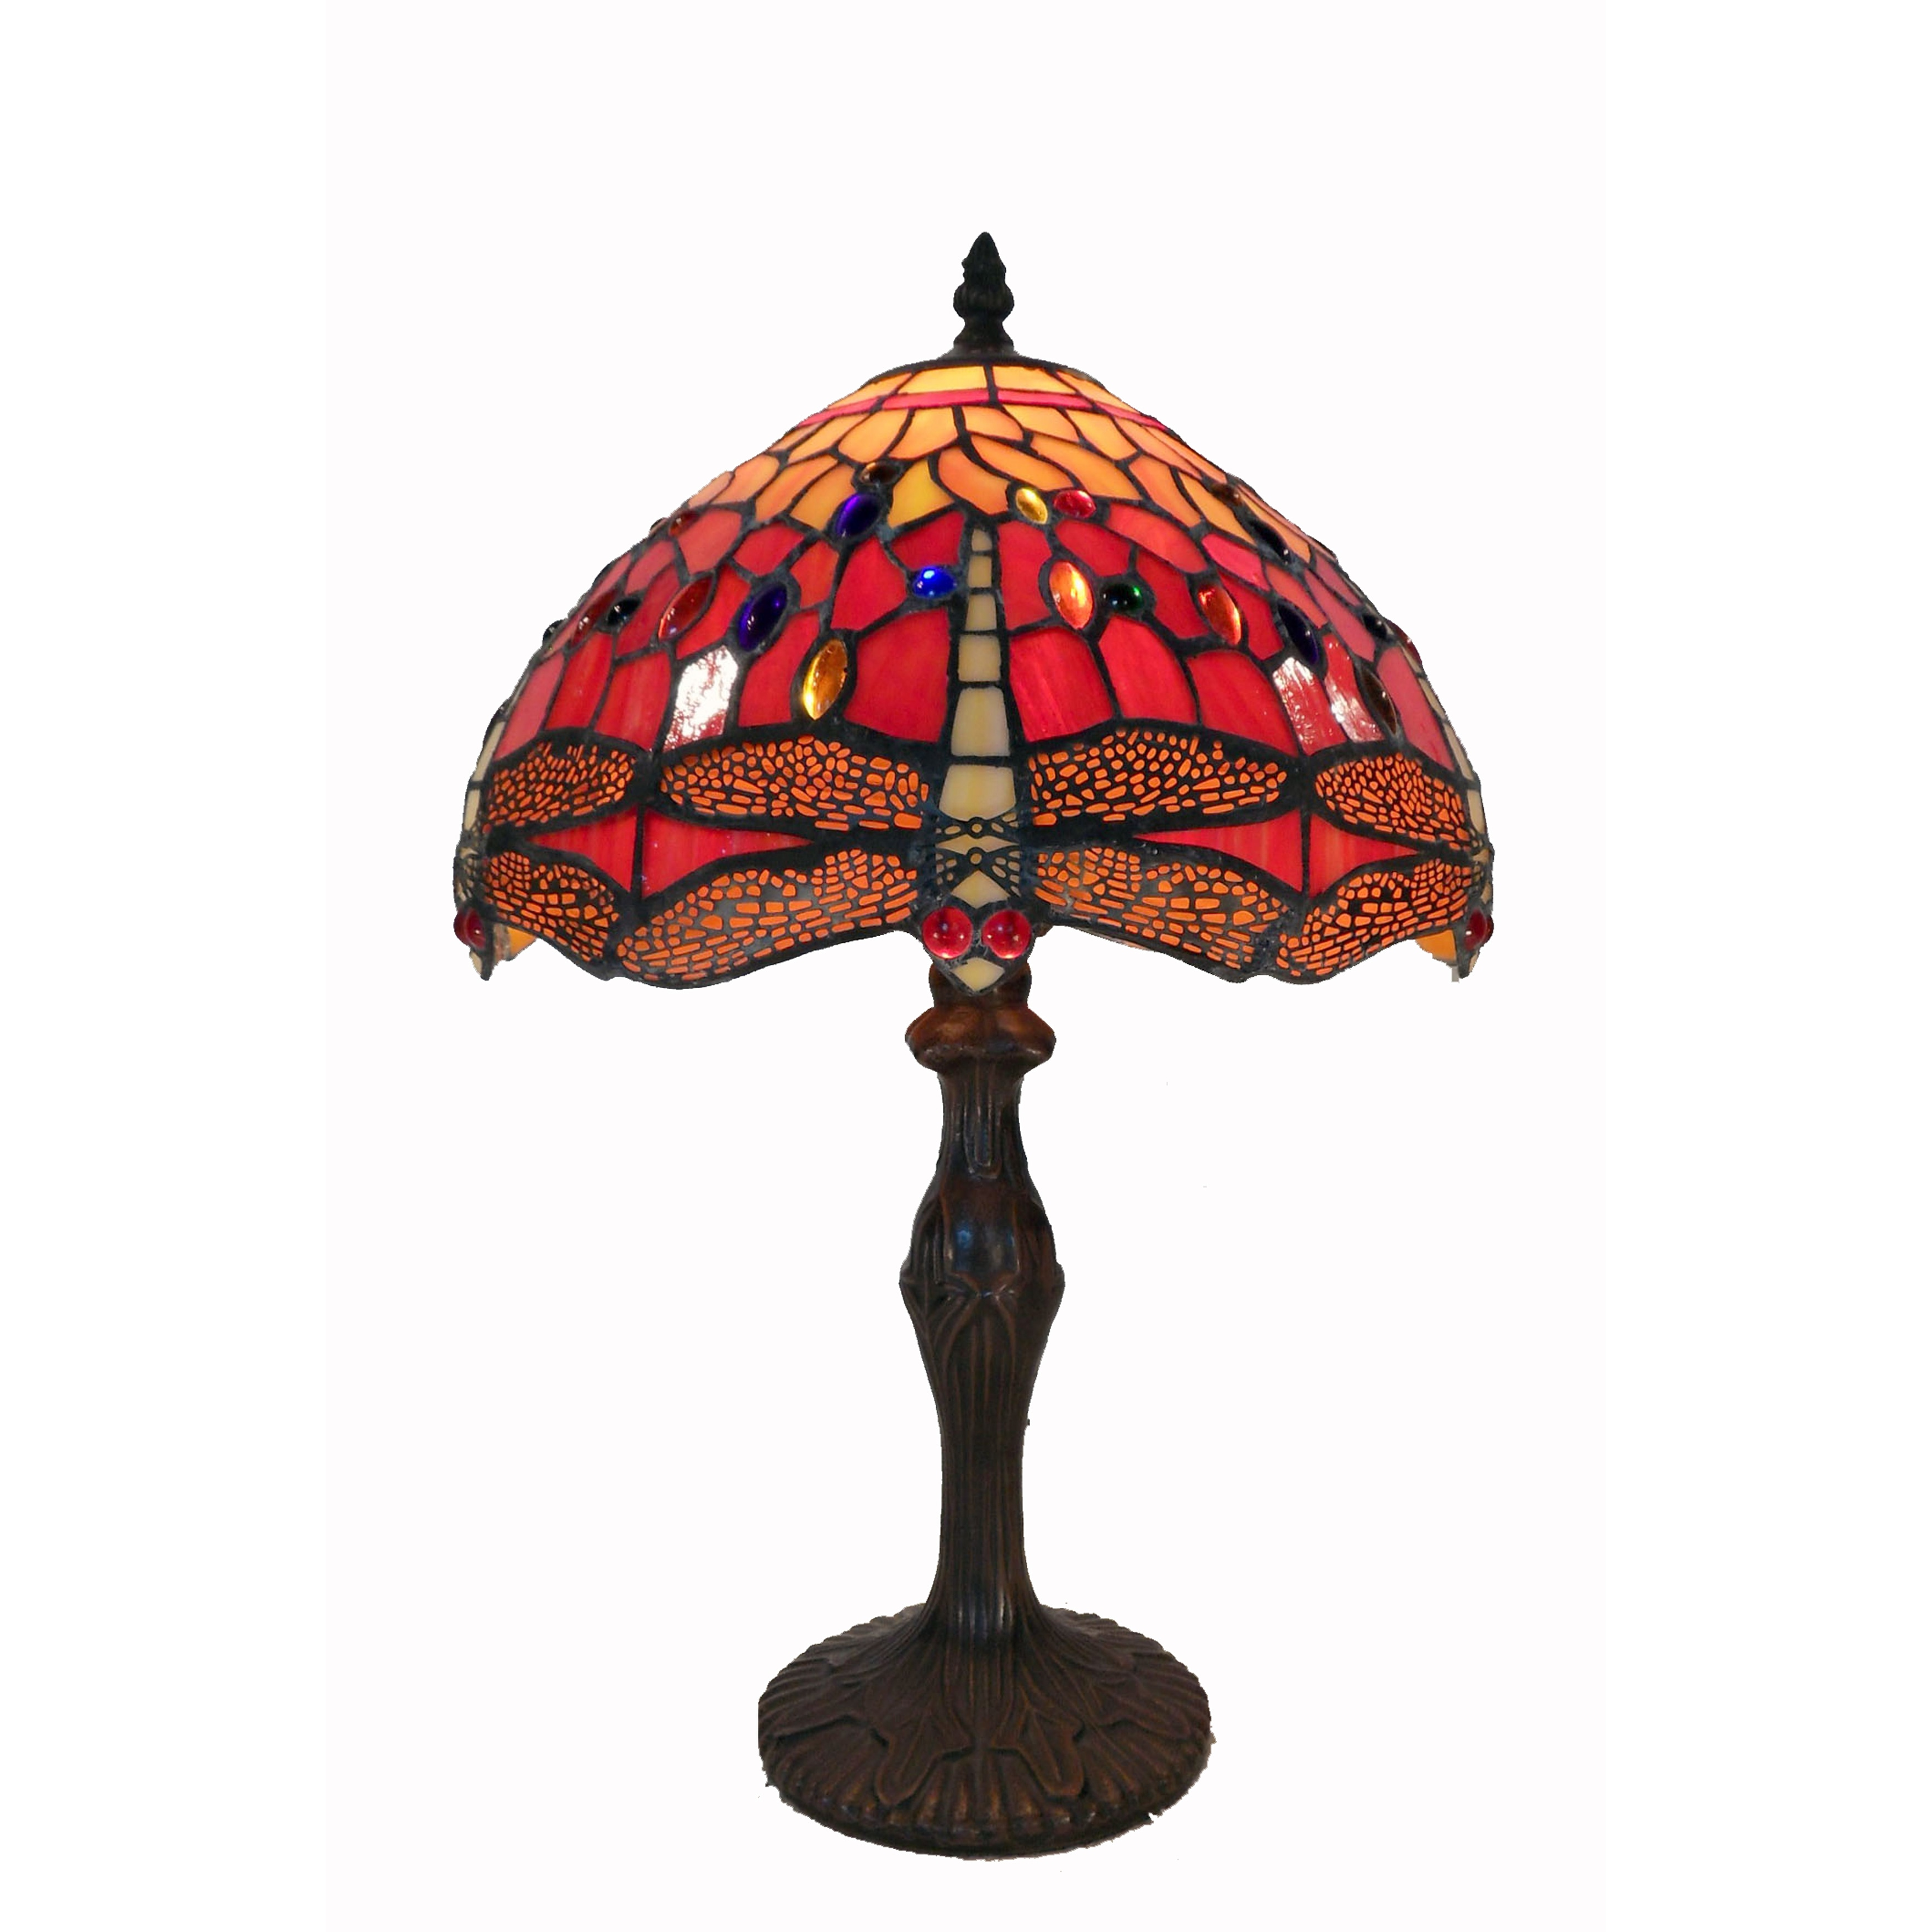 Tiffany style red dragonfly table lamp stained glass craftsman details geotapseo Gallery